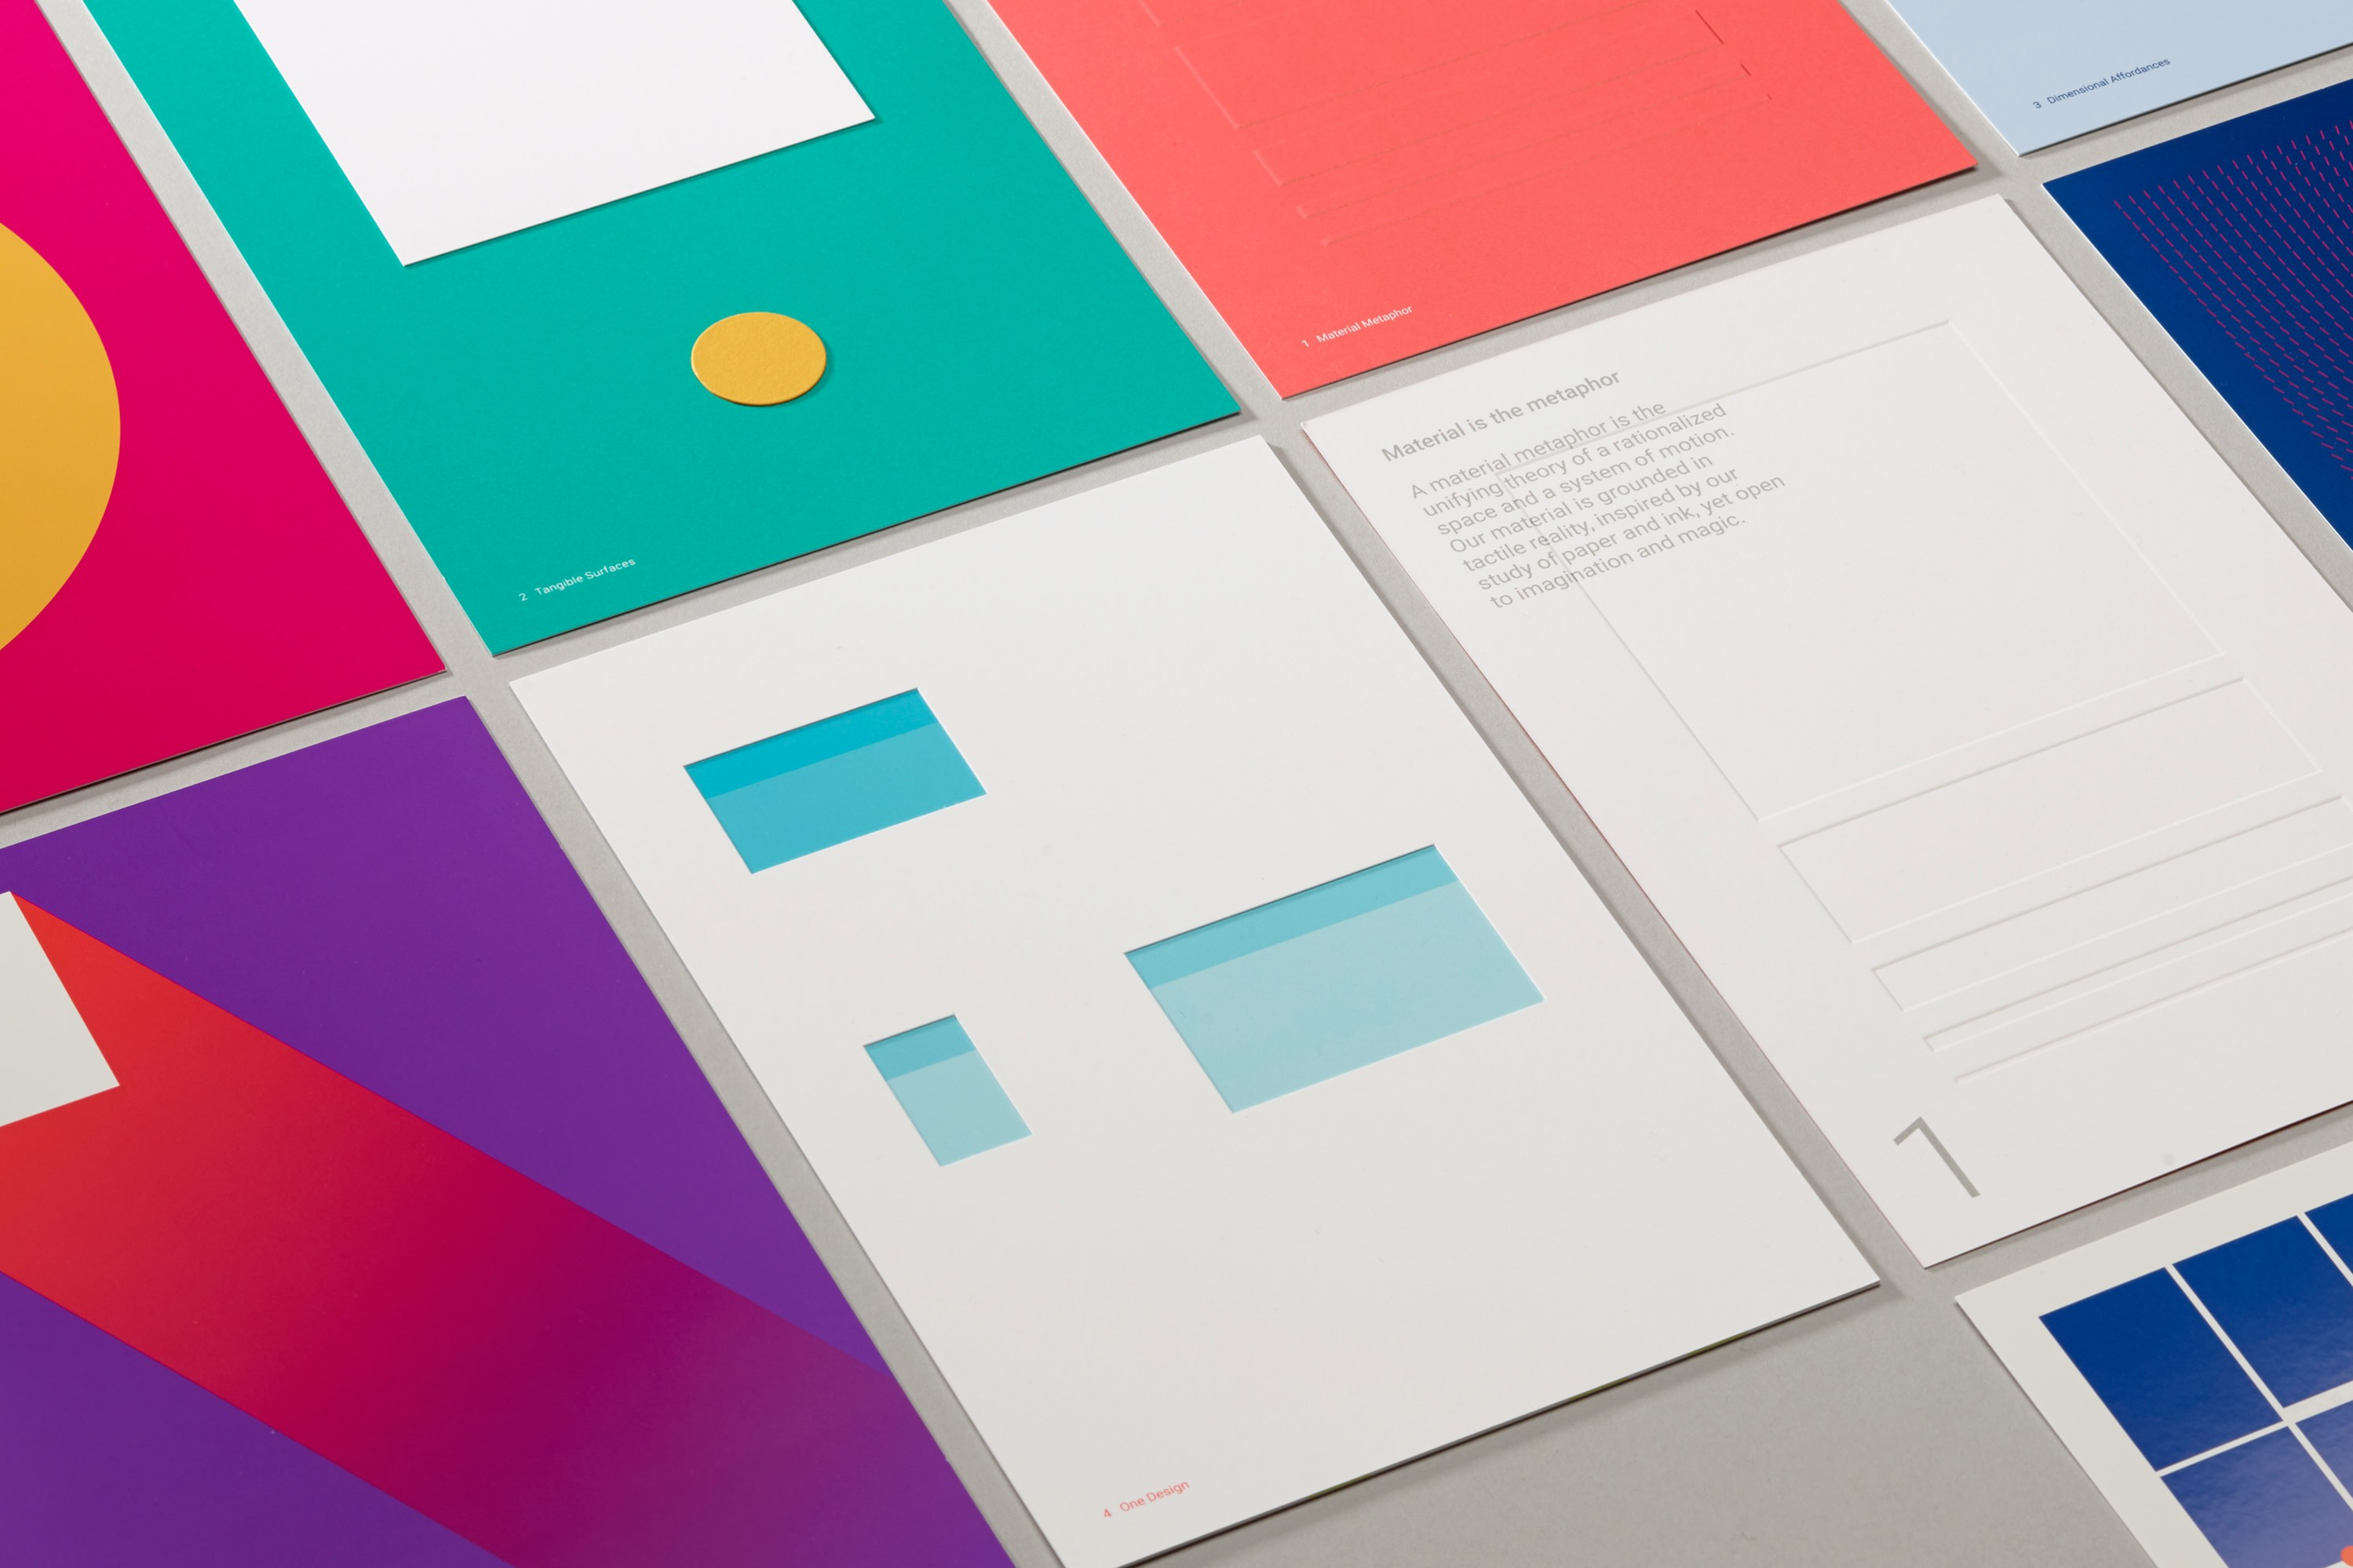 Google Material Design Printed Kit by Manual